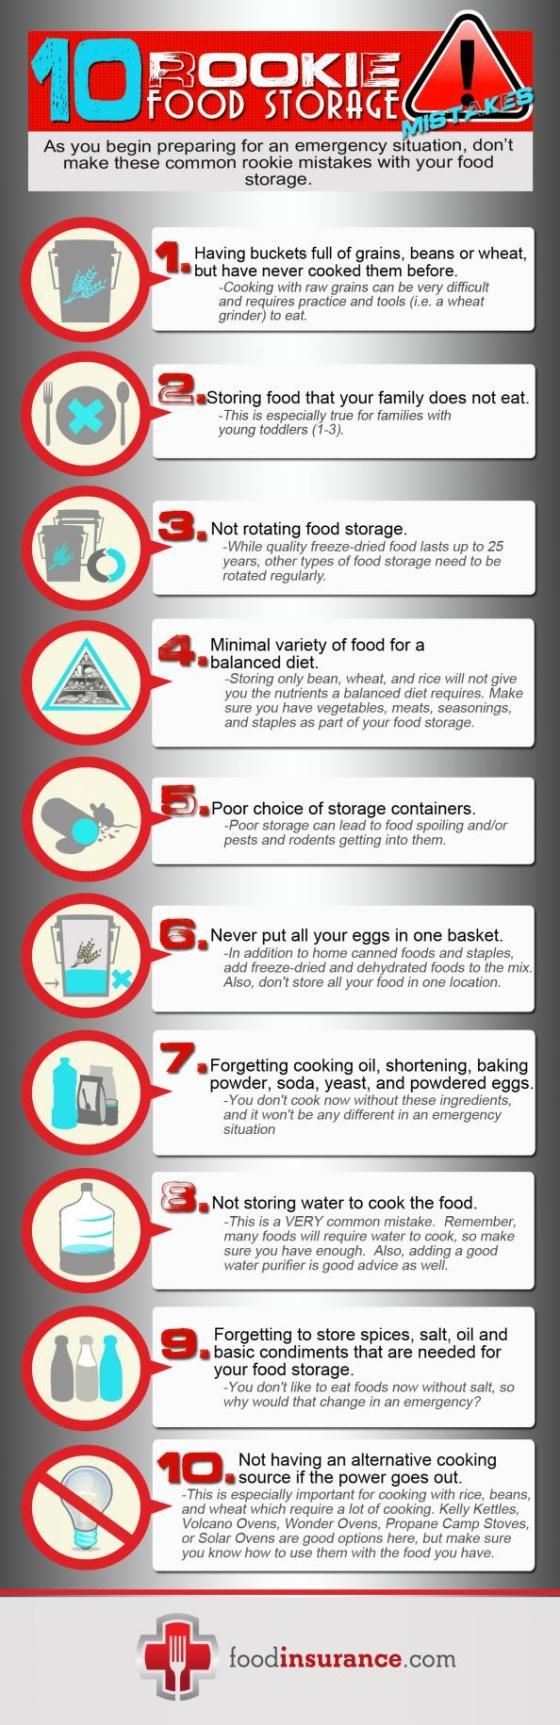 How To Build A Good Emergency Food Supply | All Self-Sustained